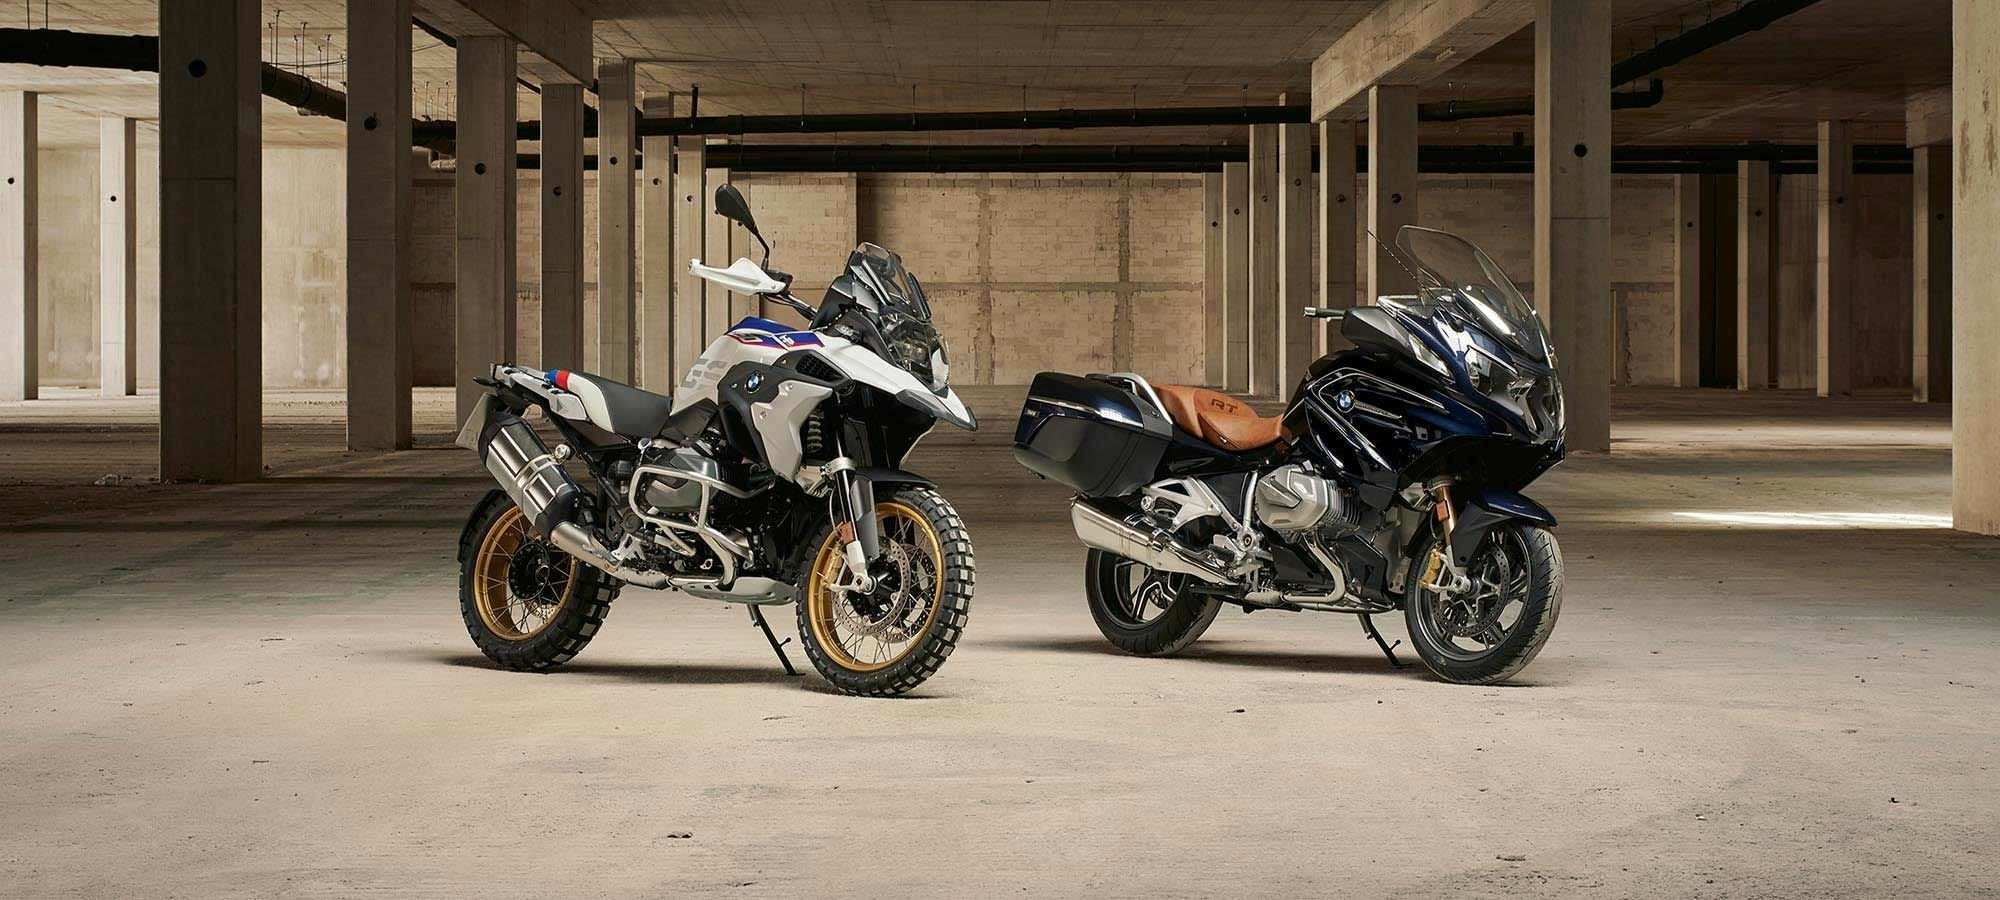 62 Best Review 2019 Bmw R1250Gs Prices for 2019 Bmw R1250Gs